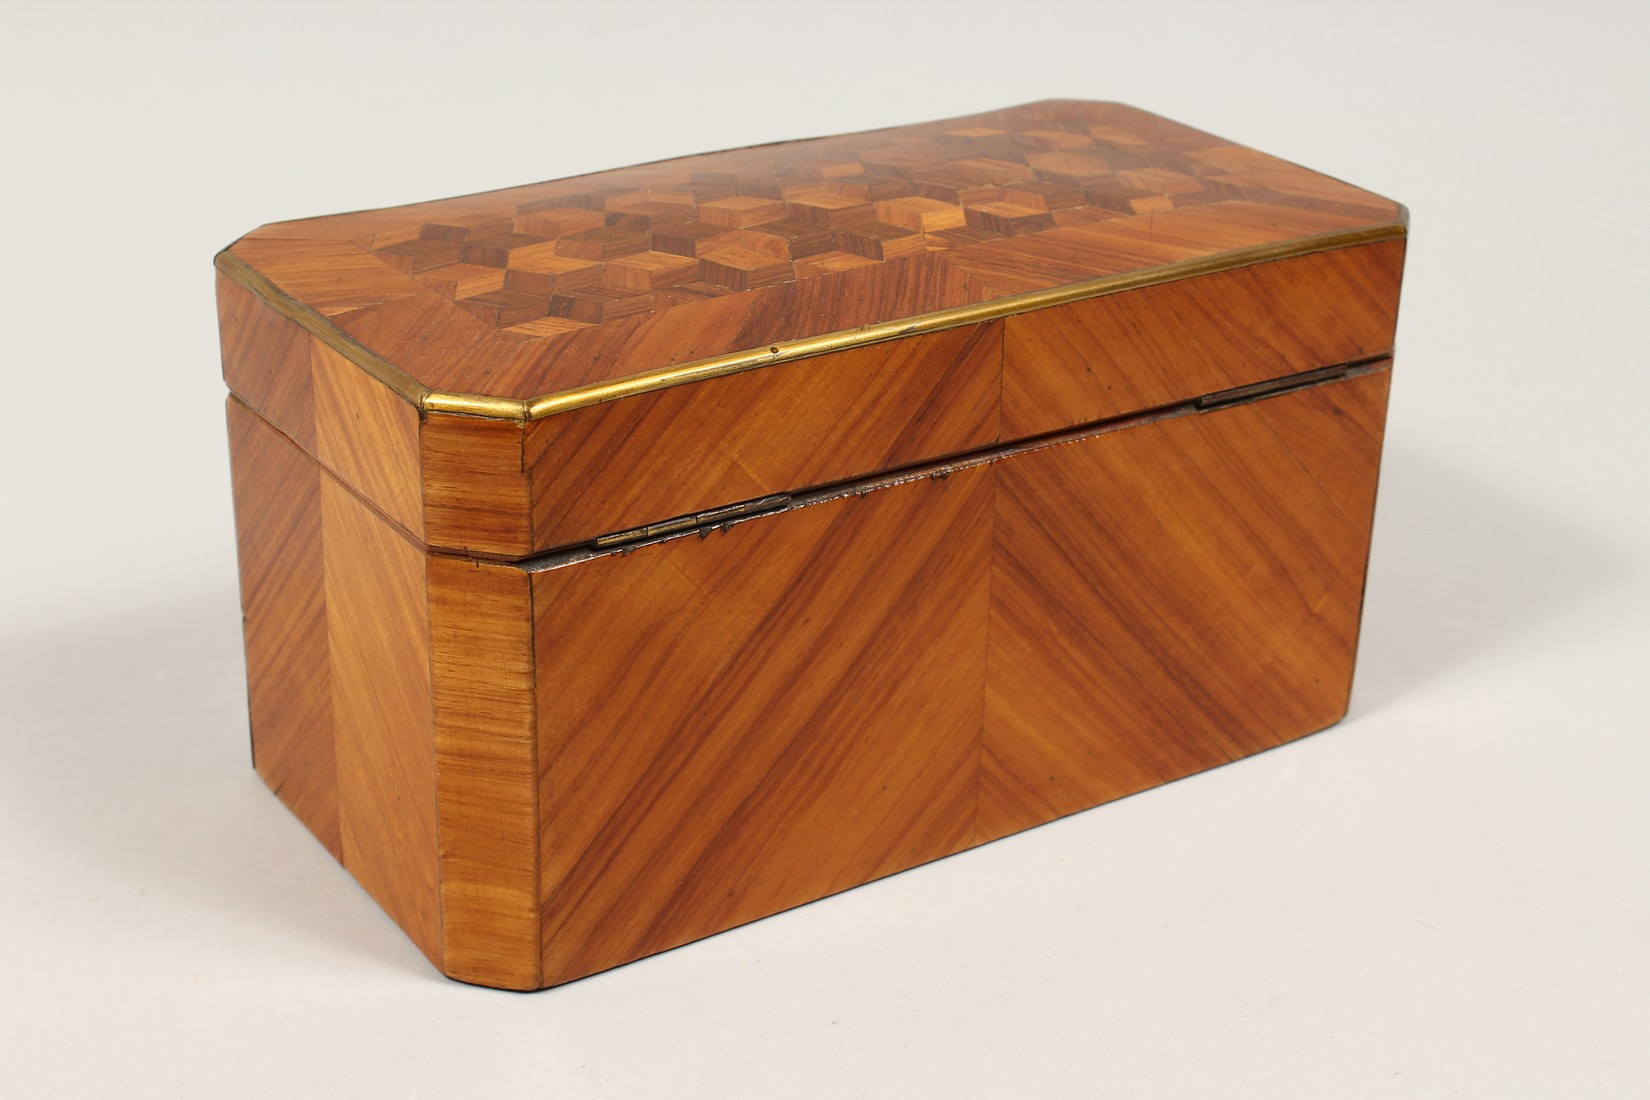 A 19TH CENTURY FRENCH KINGWOOD SERPENTINE-FRONTED TWO DIVISION TEA CADDY with Van Dyck pattern - Image 5 of 6